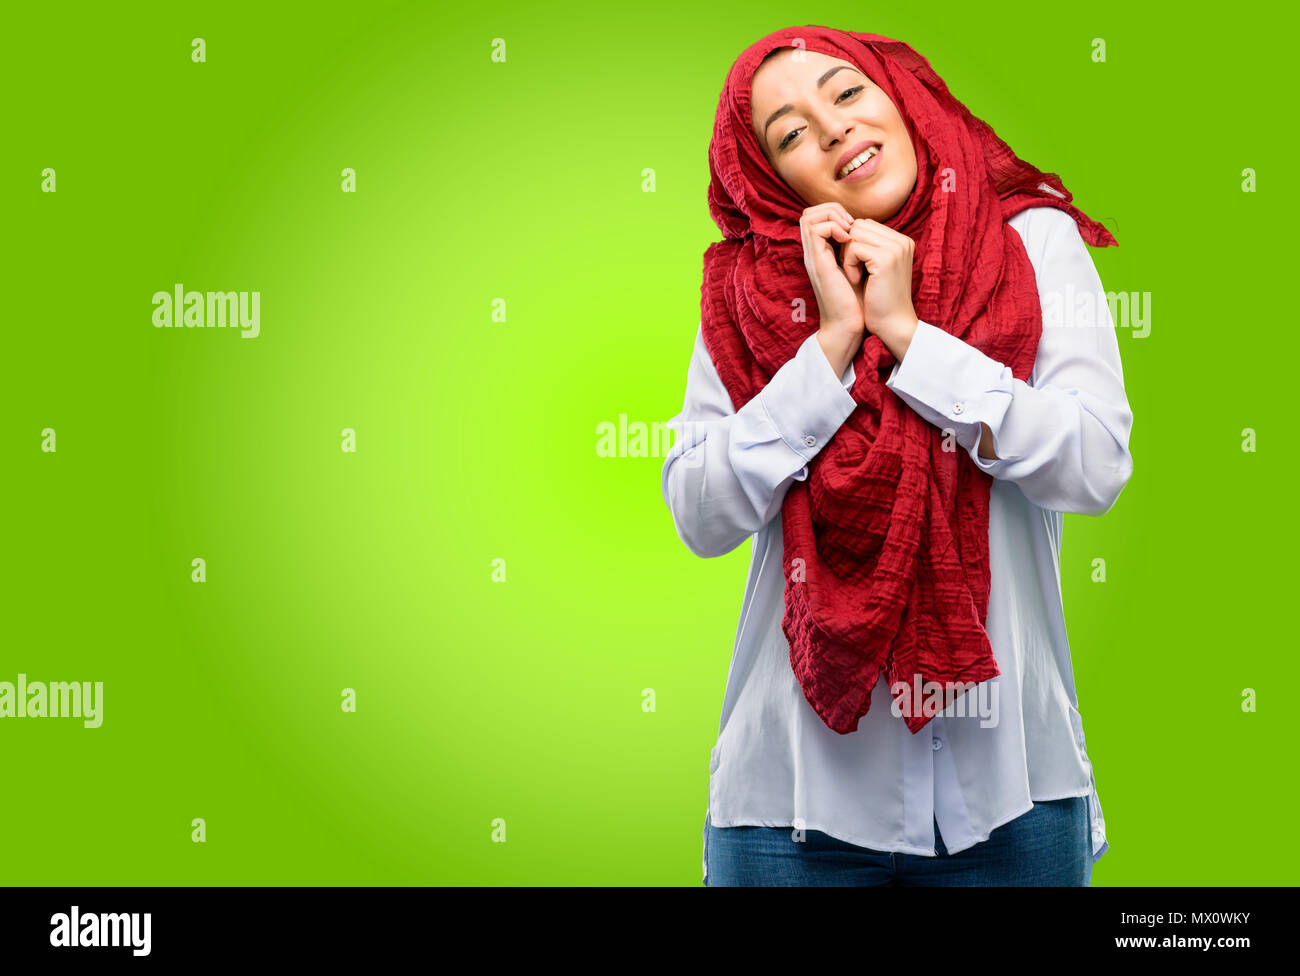 Single Muslim Female Standing In Stock Photos & Single